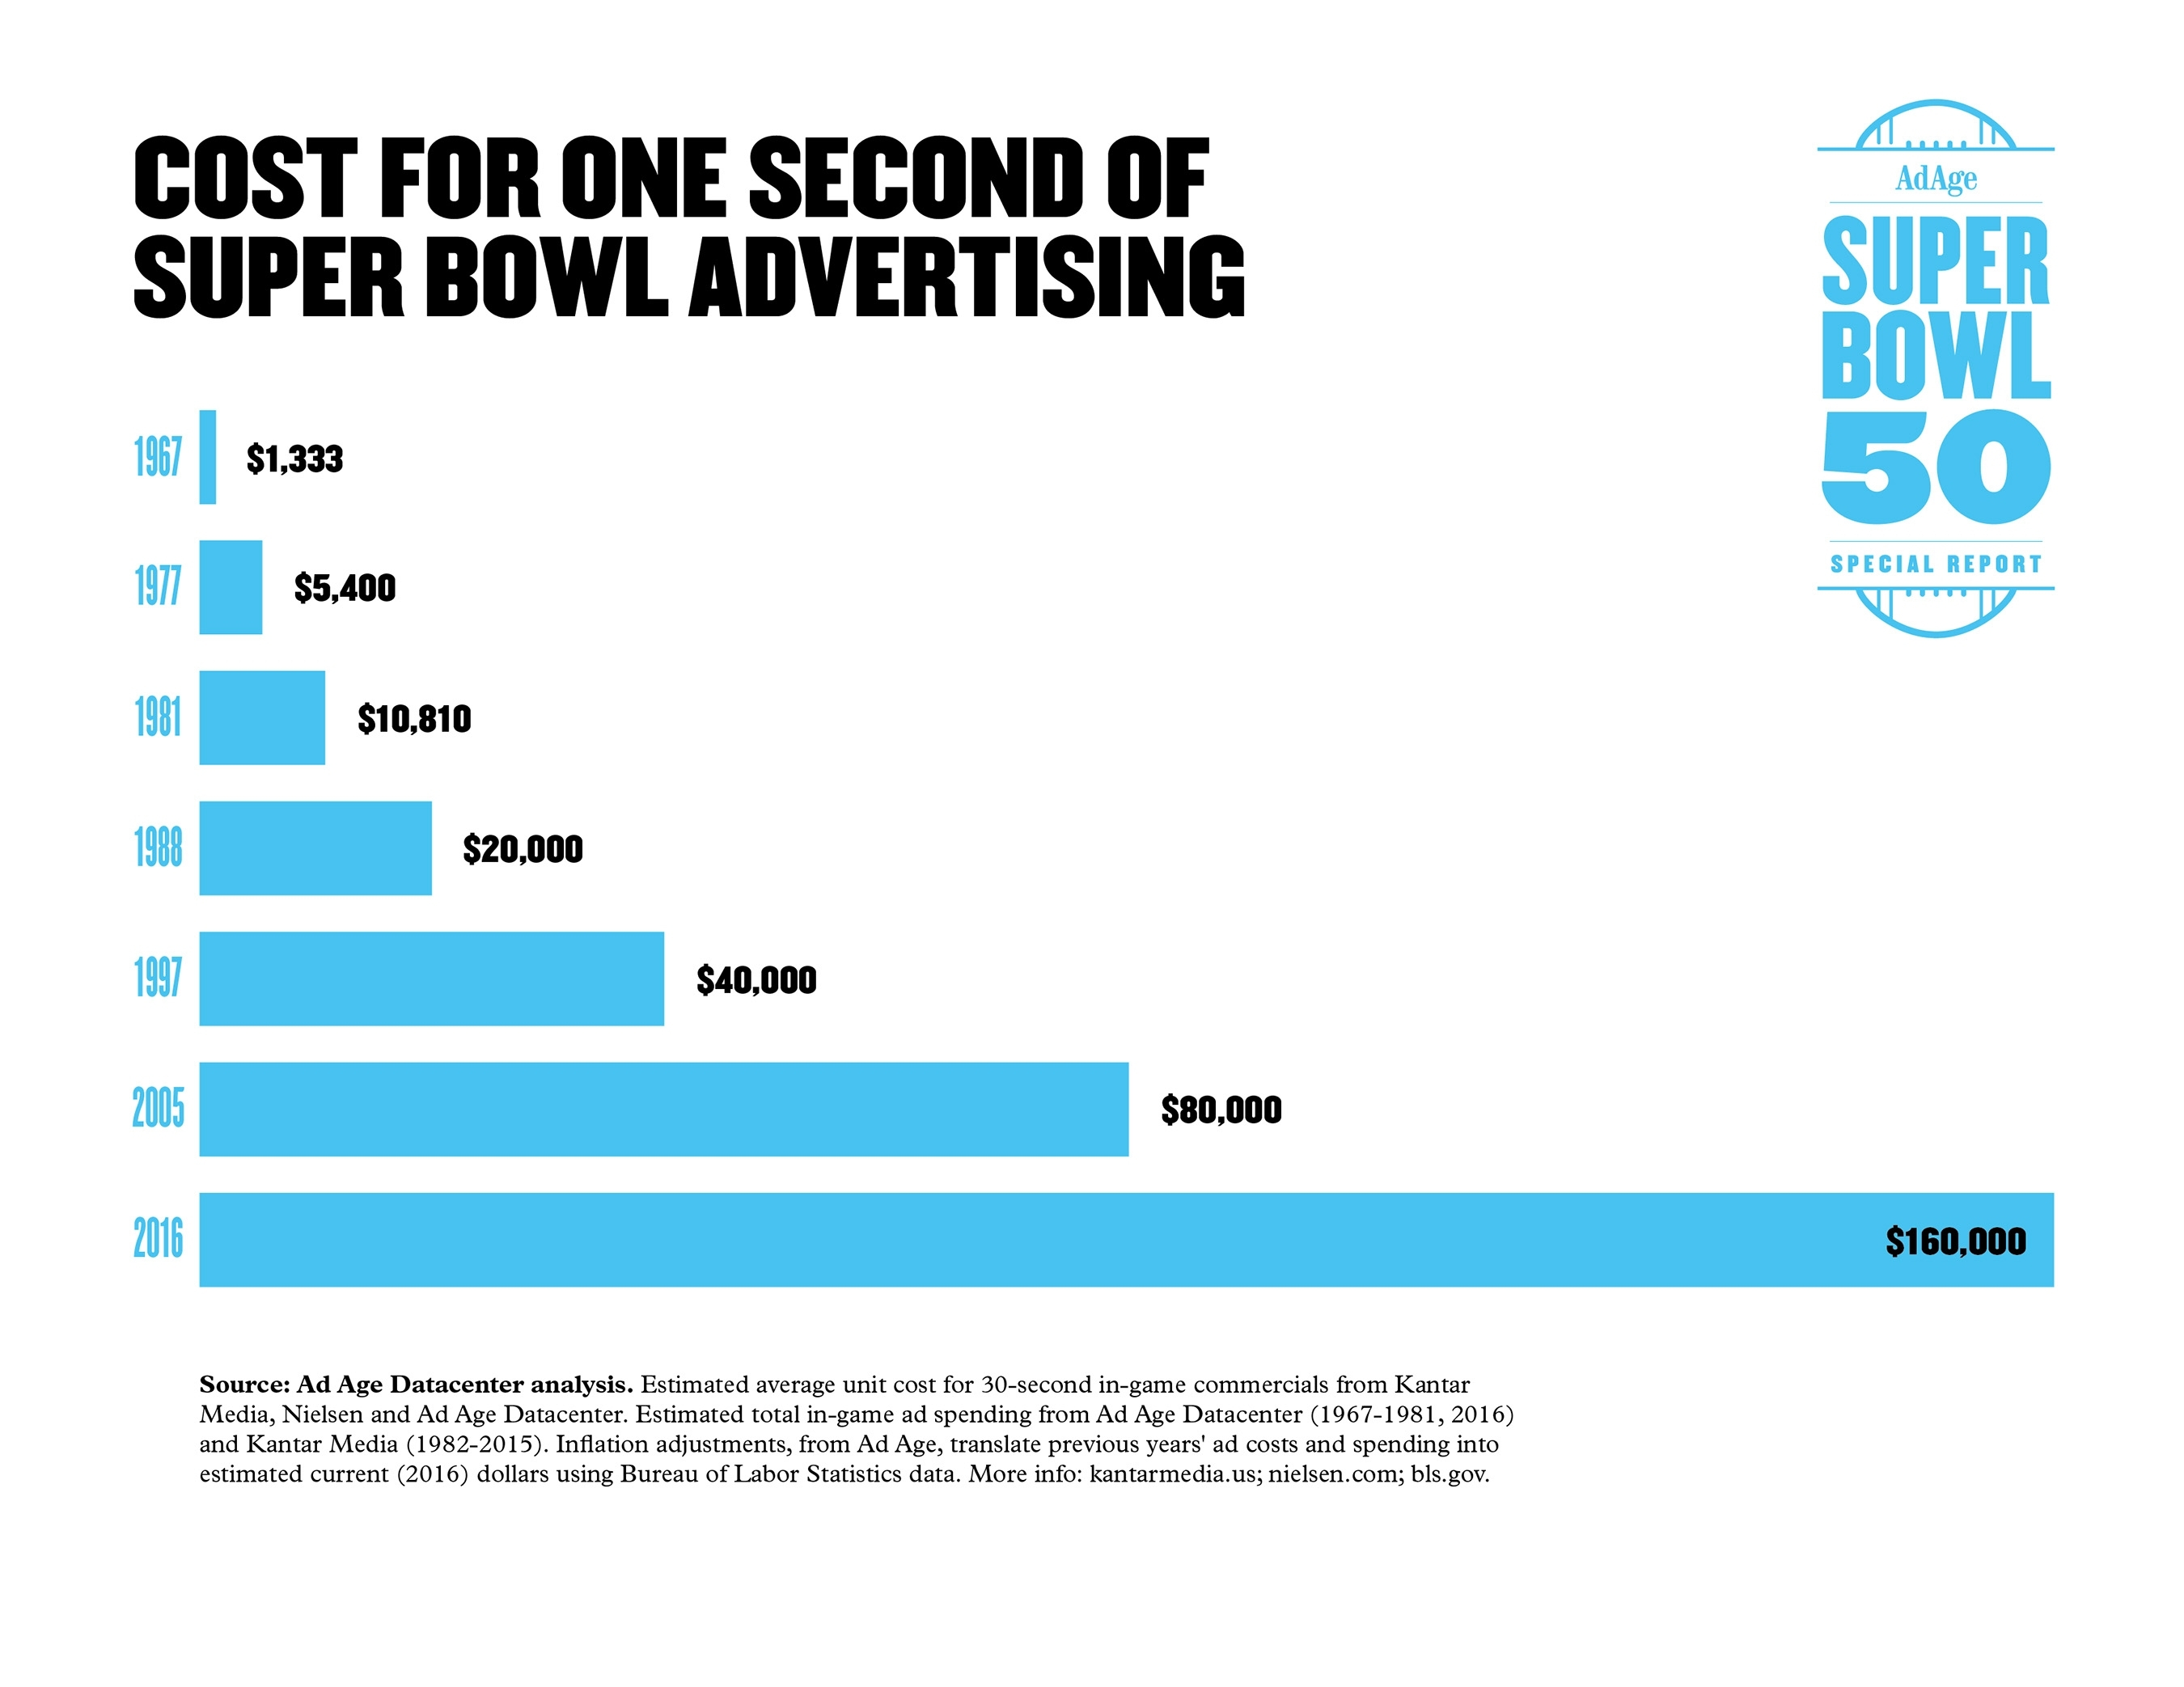 Humor And Star Power Make A Return In Super Bowl 50 pertaining to Super Bowl Ad Cost